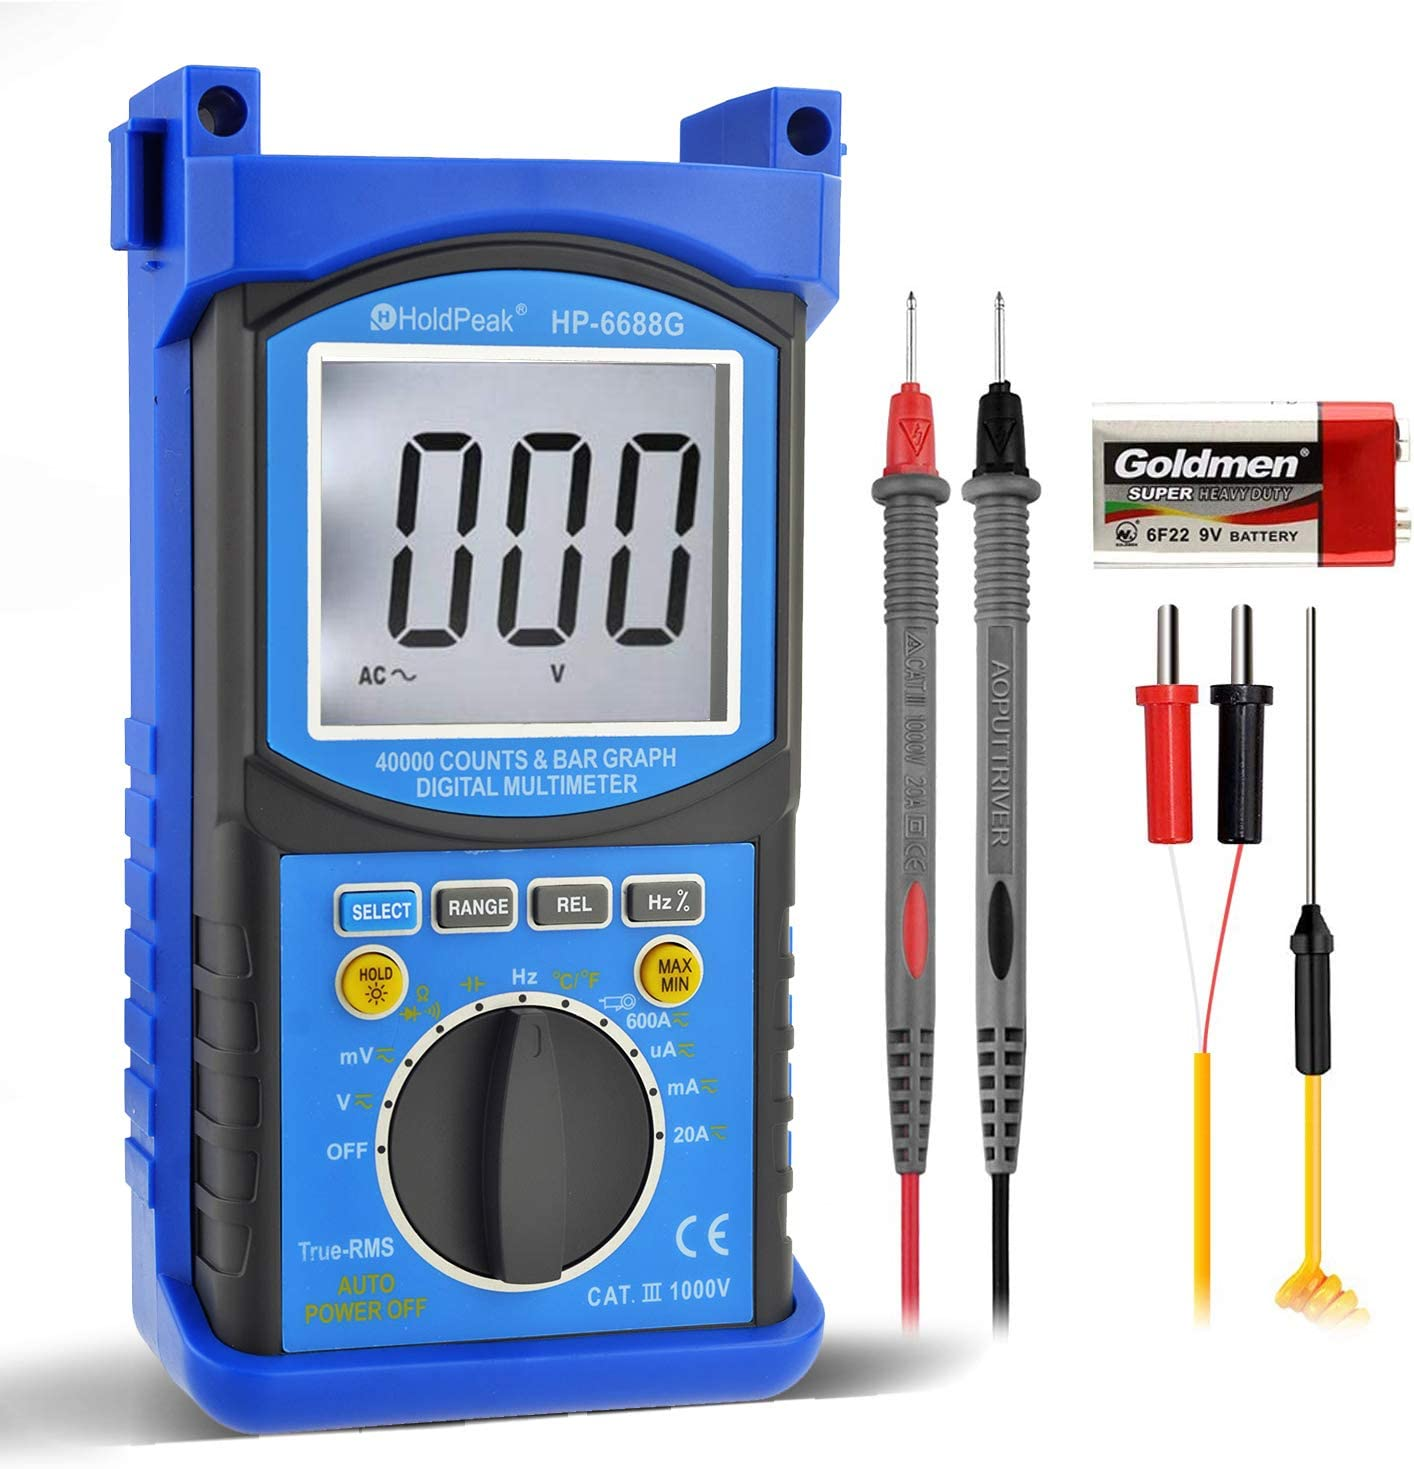 Digital Multimeter-HOLDPEAK 6688G High Precision Pro Multimeter TRMS Auto Ranging Multimeter,40000 counts CATIII 1000V AC/VC Voltage,Current,Ohm,Volt Meter,Diode/Capacitor Temperature test